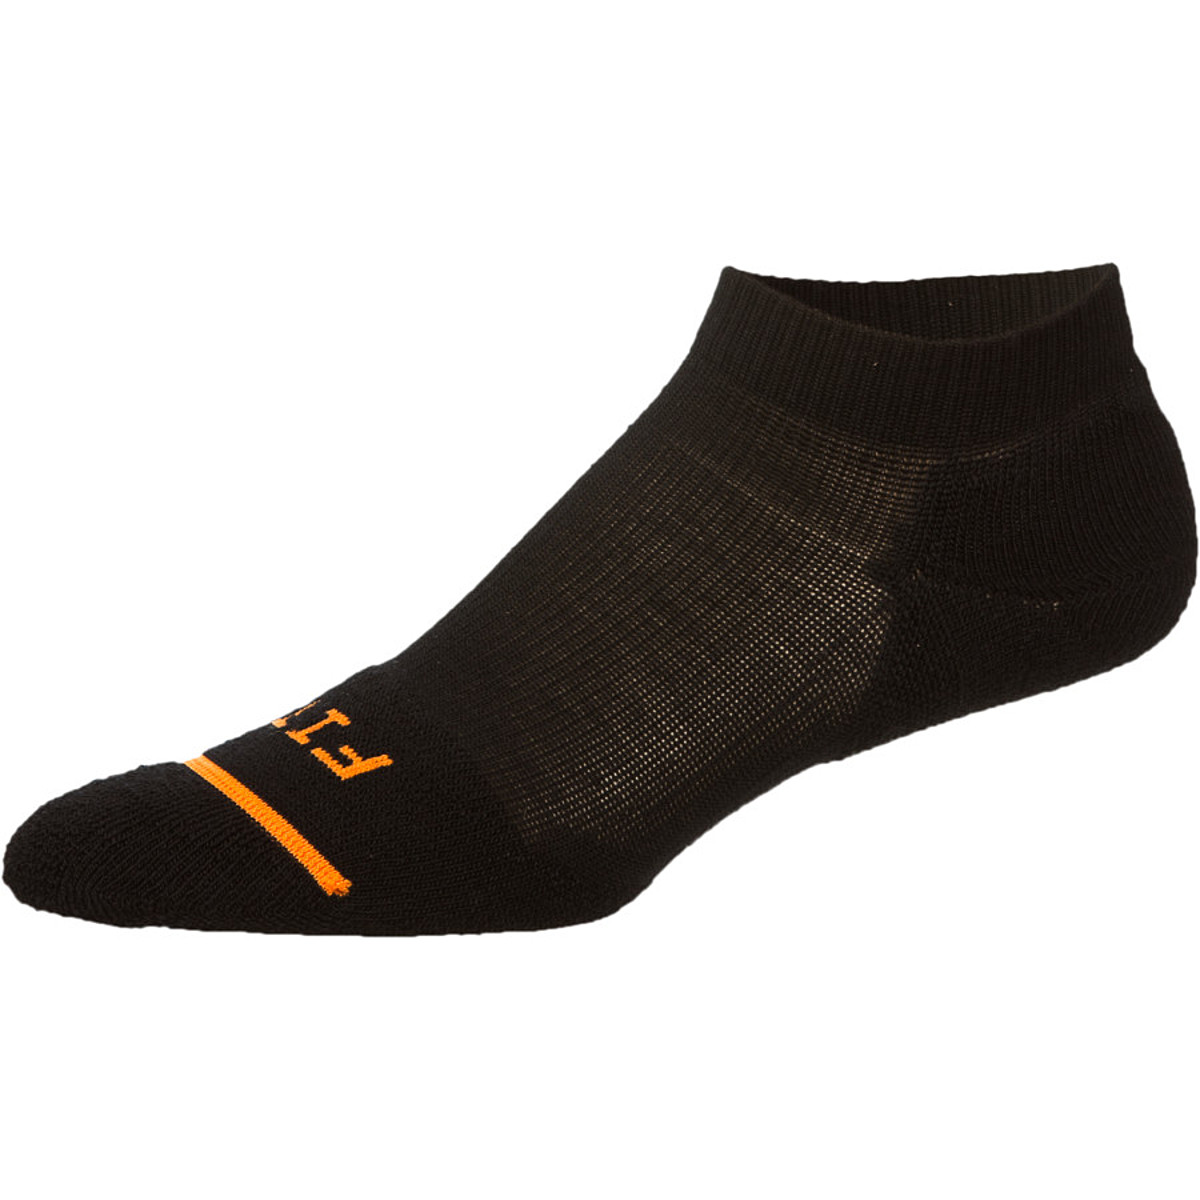 photo of a FITS Sock running sock